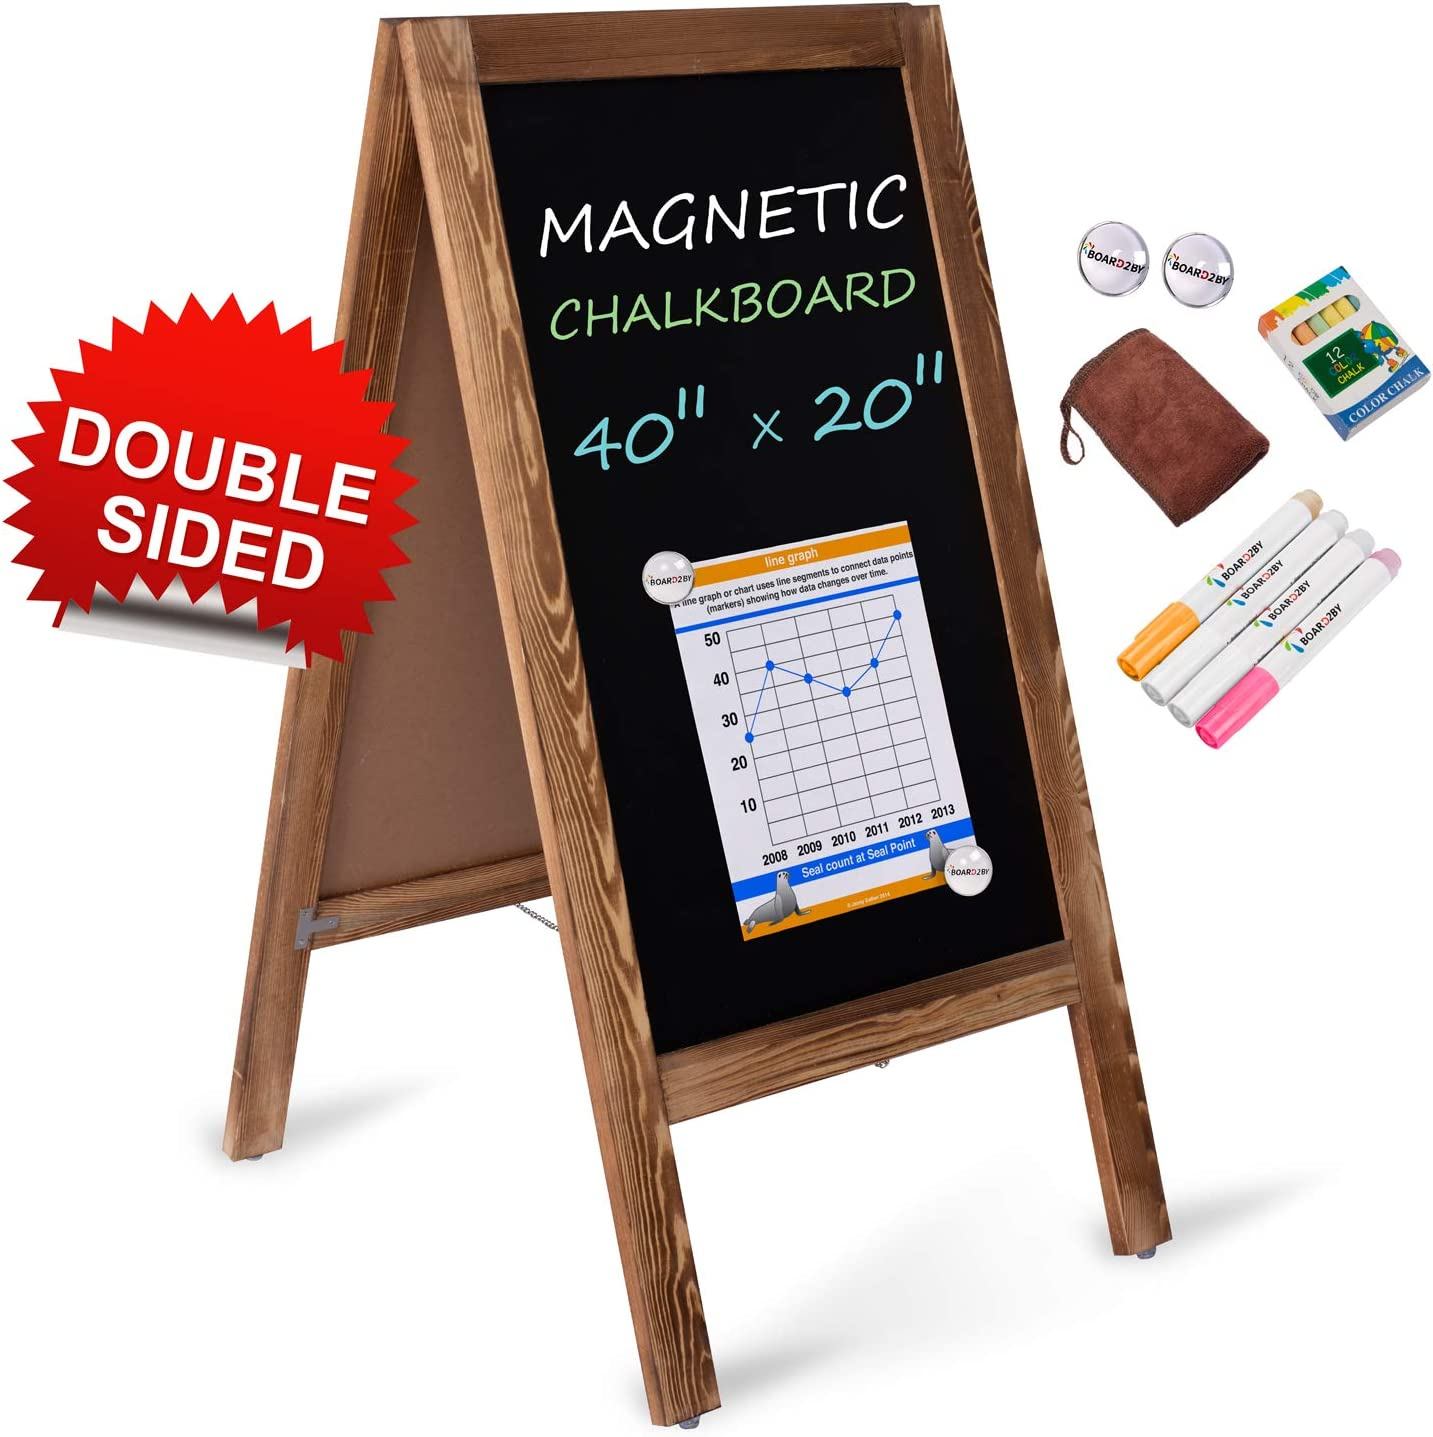 Rustic Brown Business or Wedding Freestanding Chalk Board Easel for Restaurant Board2by Heavy Duty A-Frame Magnetic Chalkboard Sign- 40 X 20 Large Folding Sandwich Board Standing Sidewalk Sign